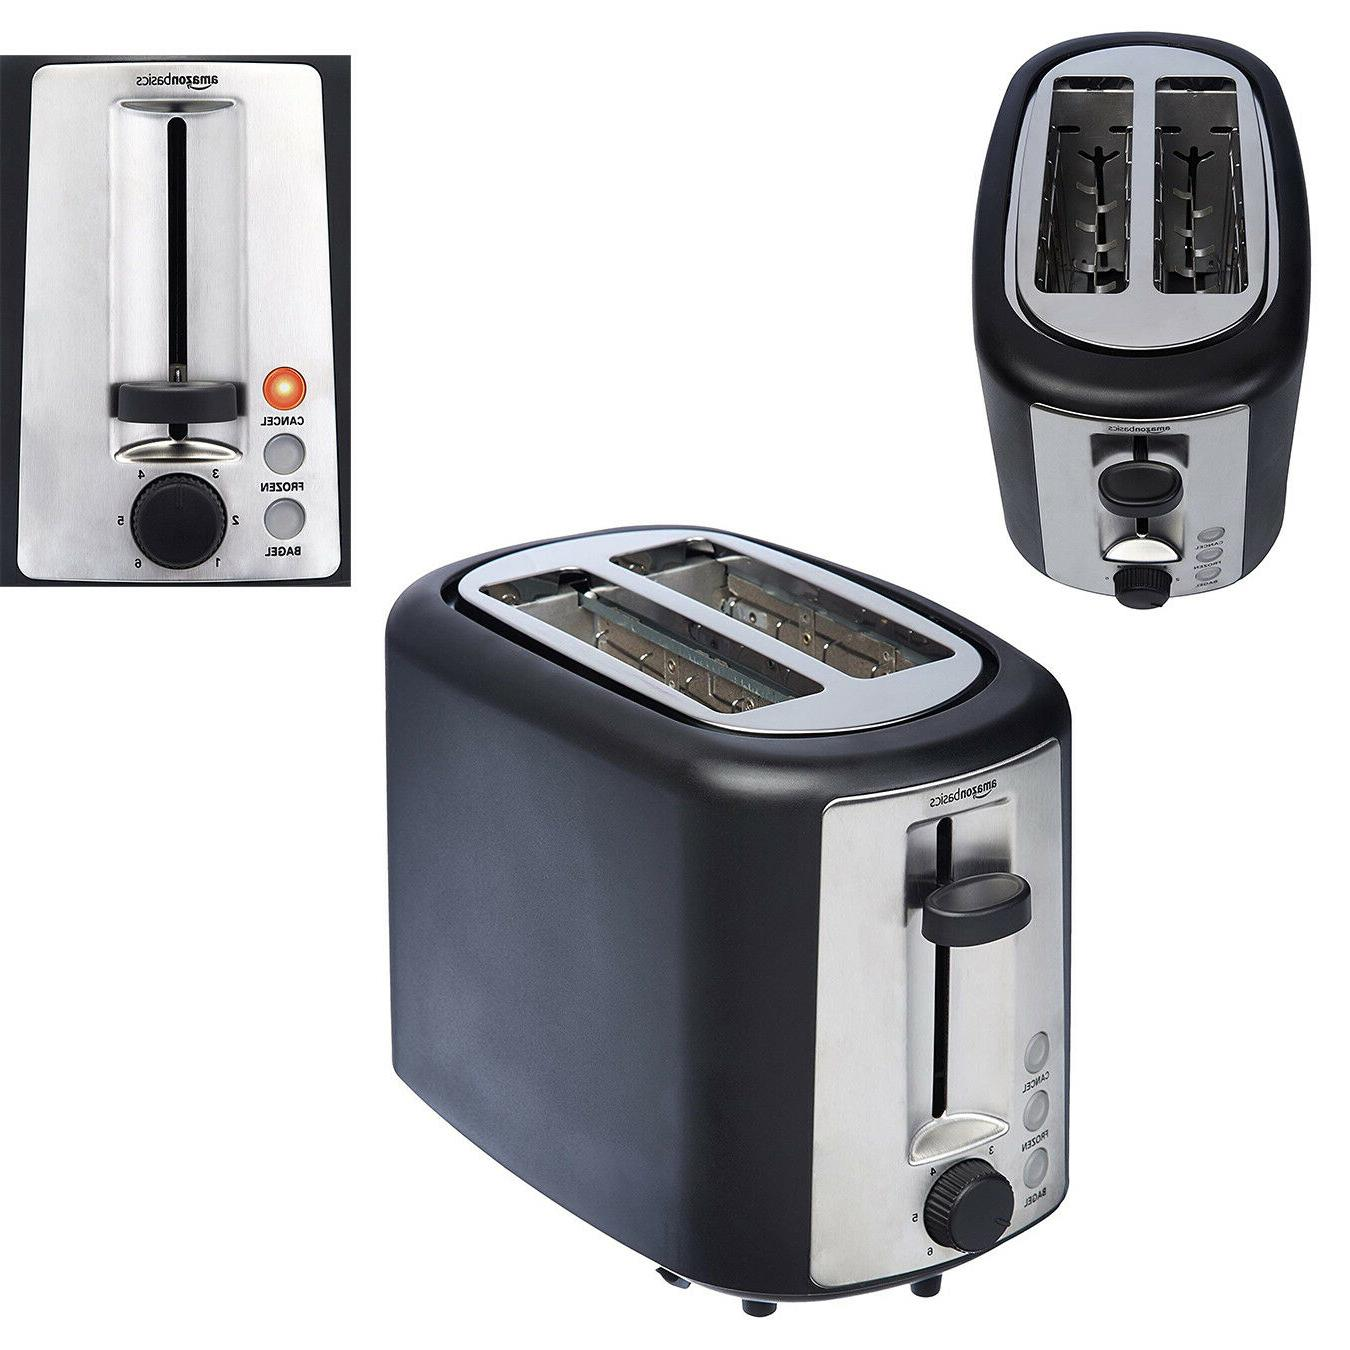 2 slice toaster extra wide slots w